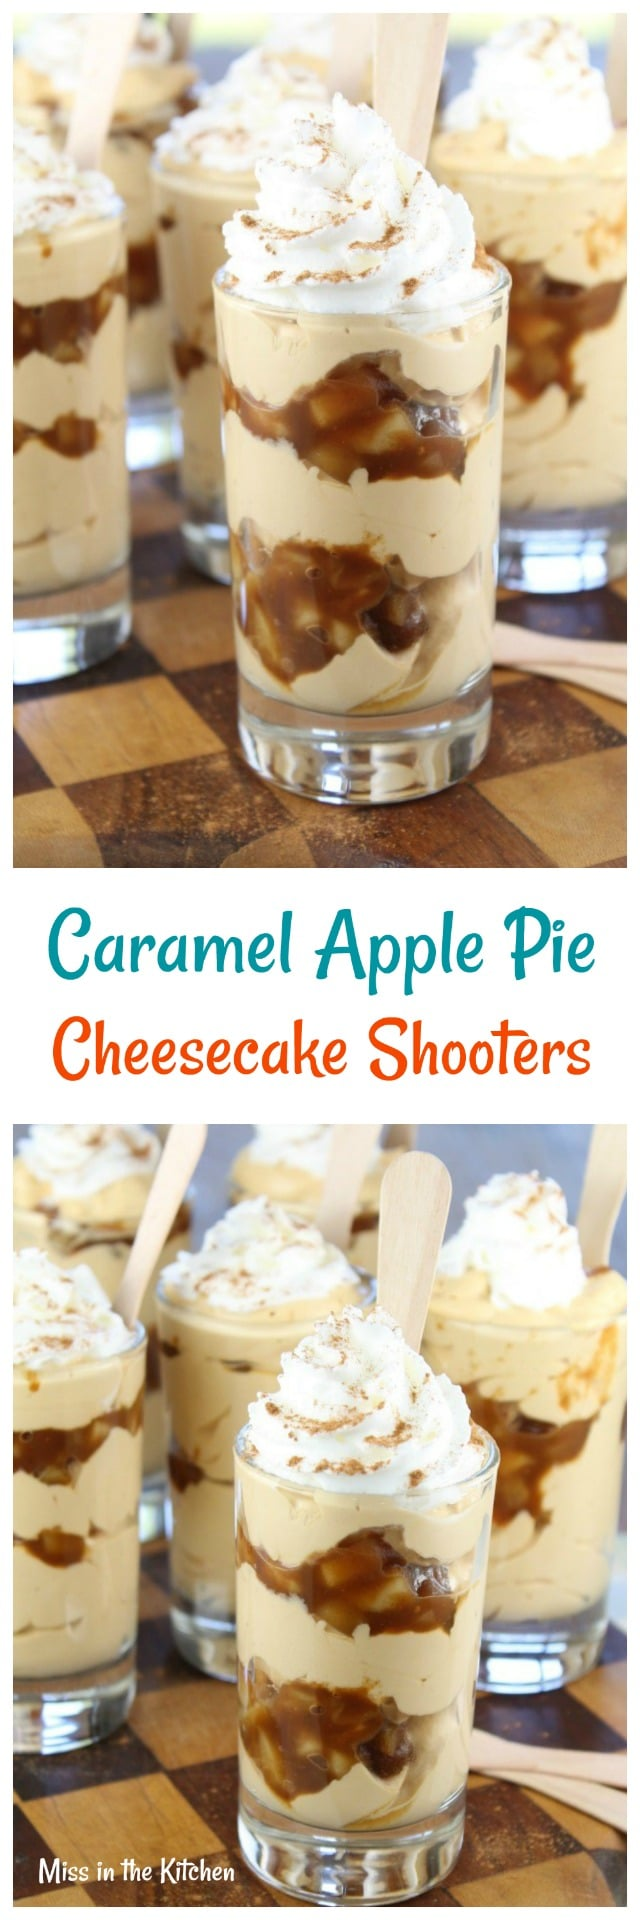 Caramel Apple Pie Cheesecake Shooters Recipe from MissintheKitchen.com #ad #AppleButterSpin @Musselmans